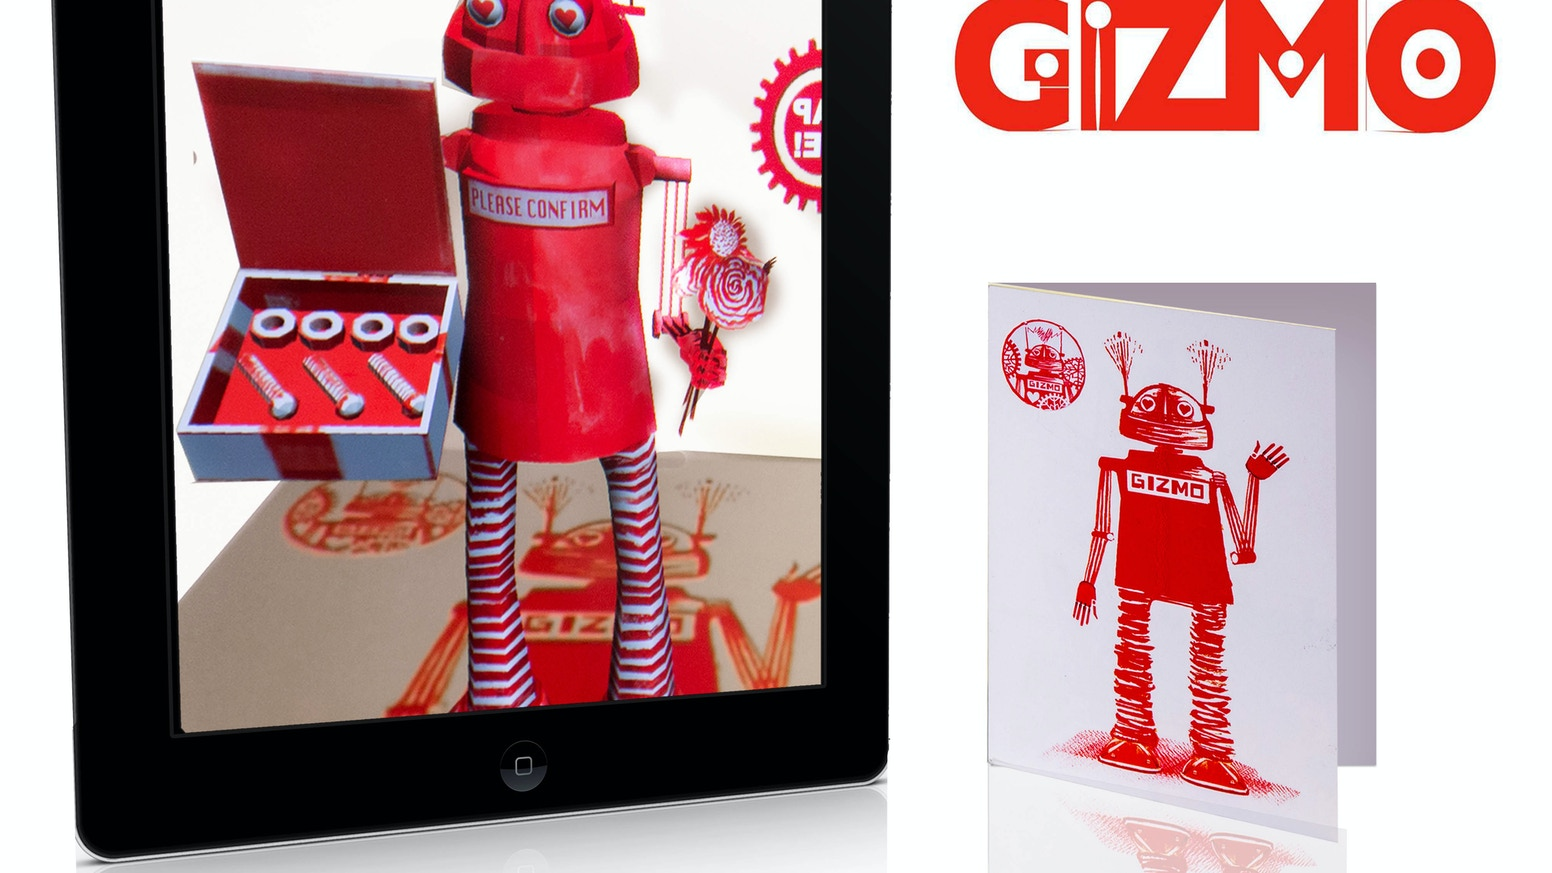 Gizmo augmented reality greeting cards by john littleboy kickstarter gizmo augmented reality greeting cards kristyandbryce Choice Image